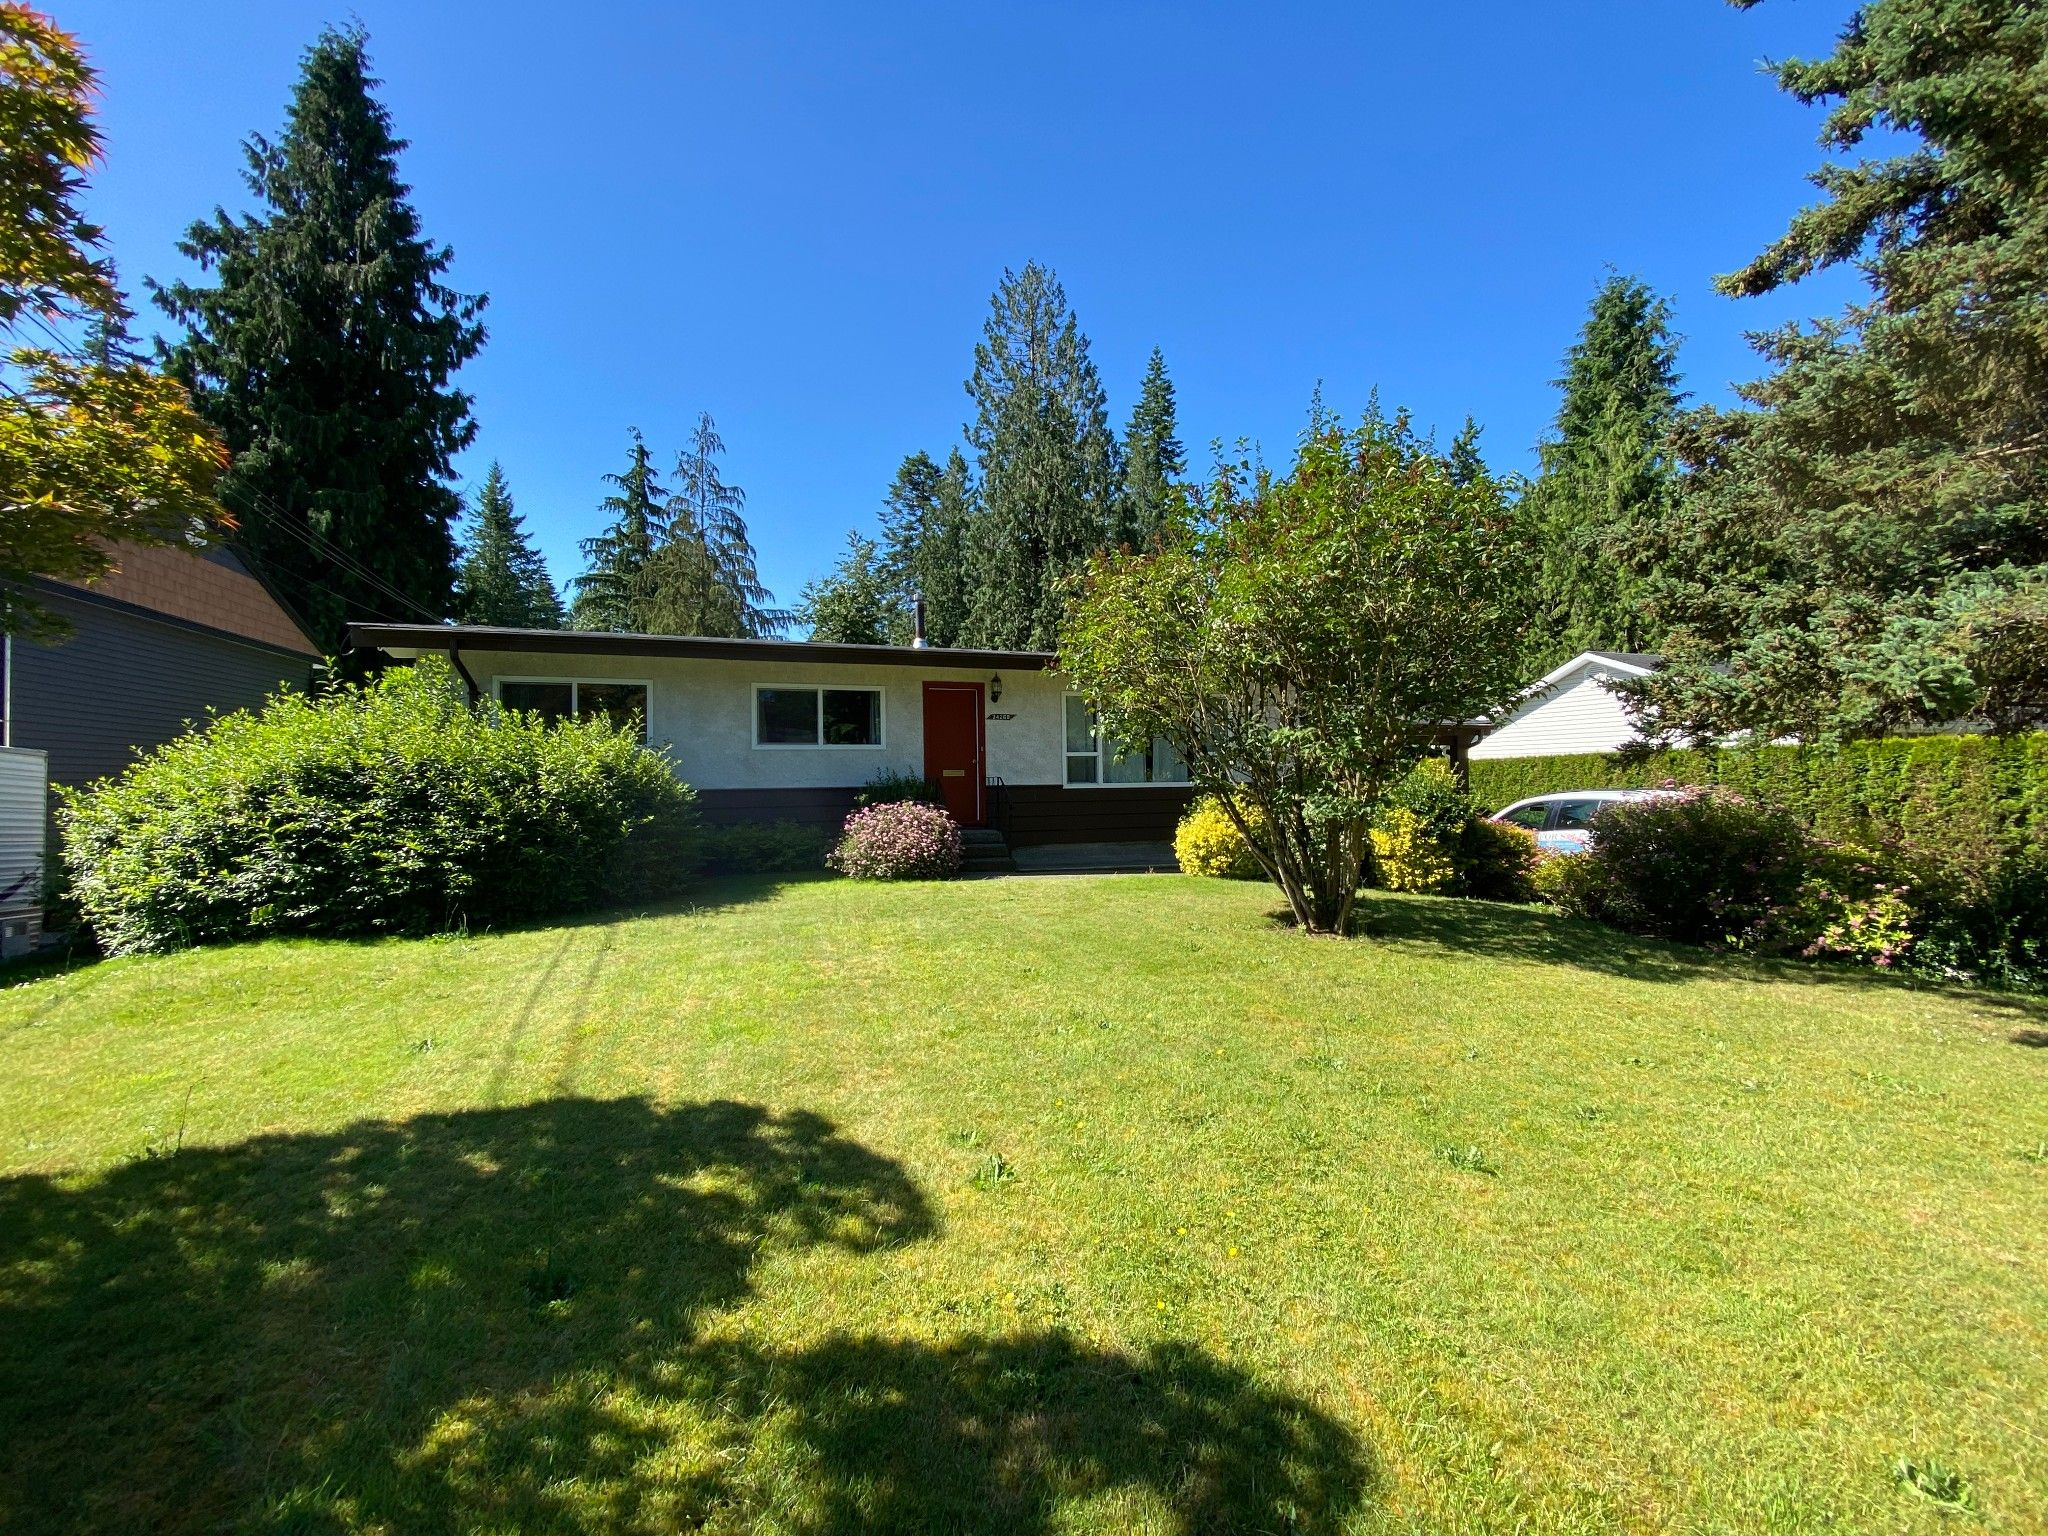 Main Photo: 34268 Green Ave. in Abbotsford: Abbotsford East House for rent